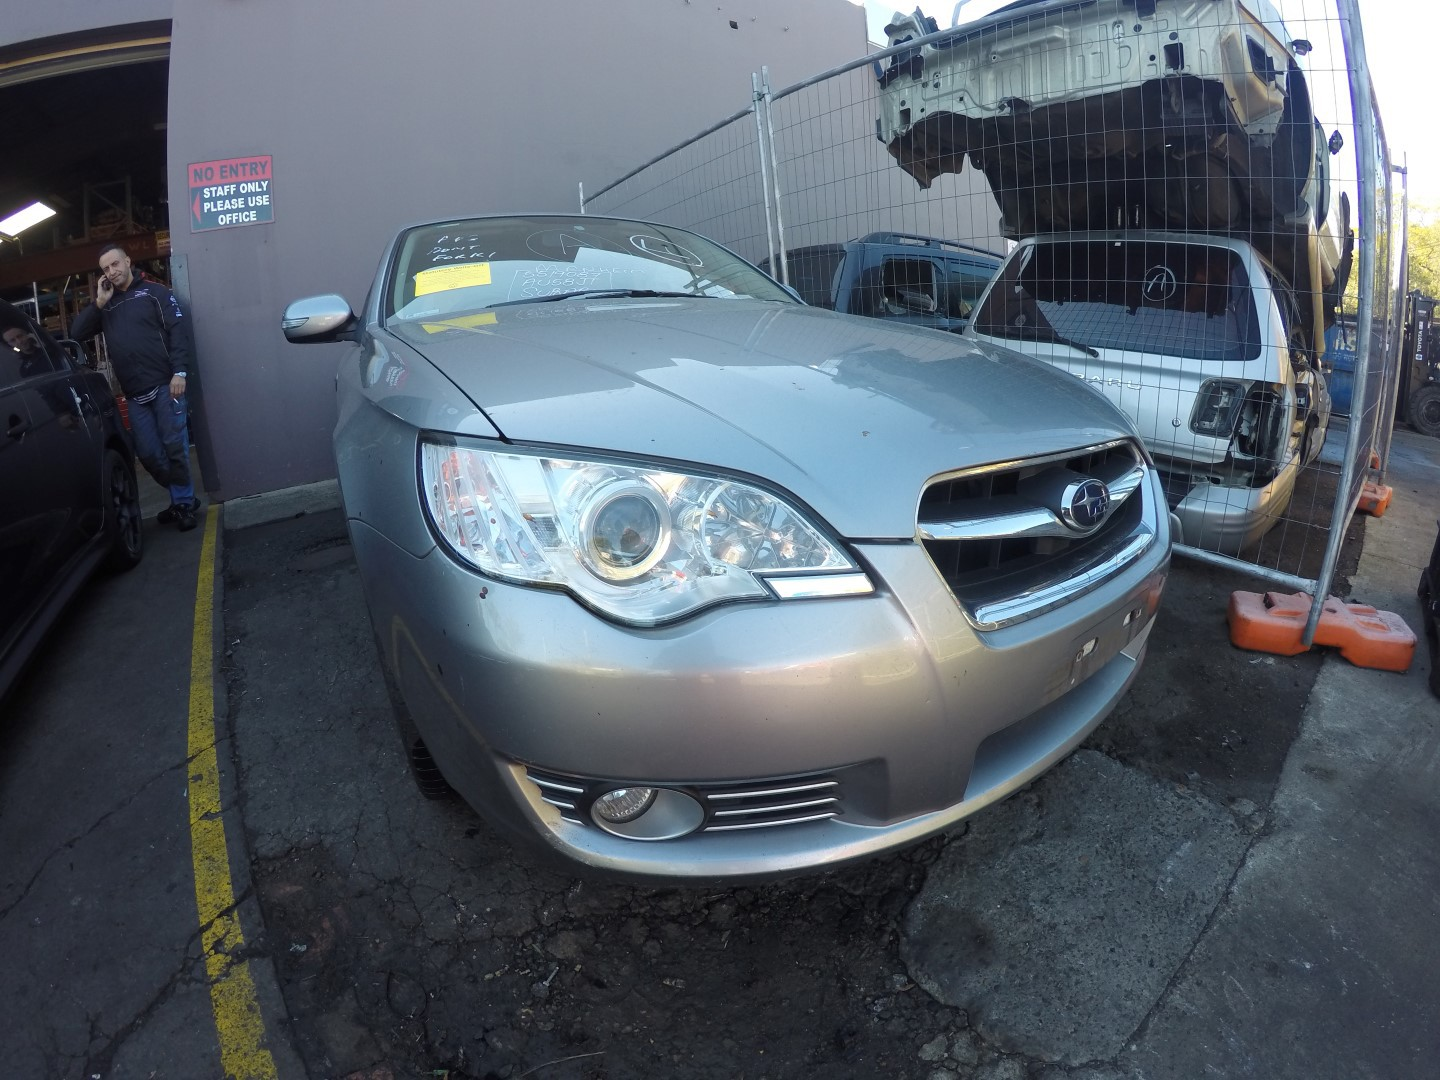 Subaru Wrecking Liberty 08 EZ30 AUTO CVT Tan Interior Engine